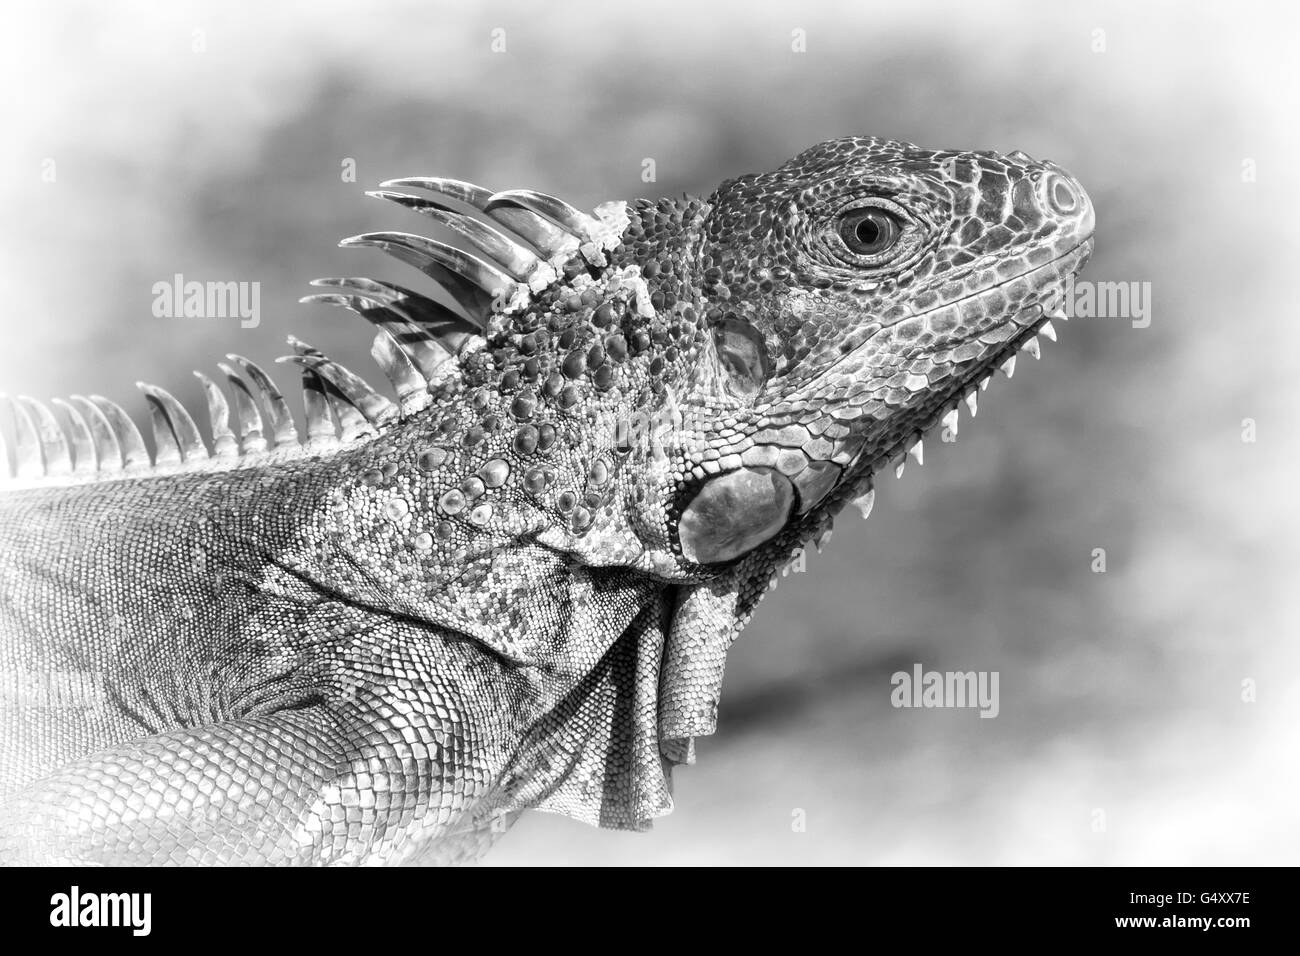 Black and white side view of a large lizard - Stock Image